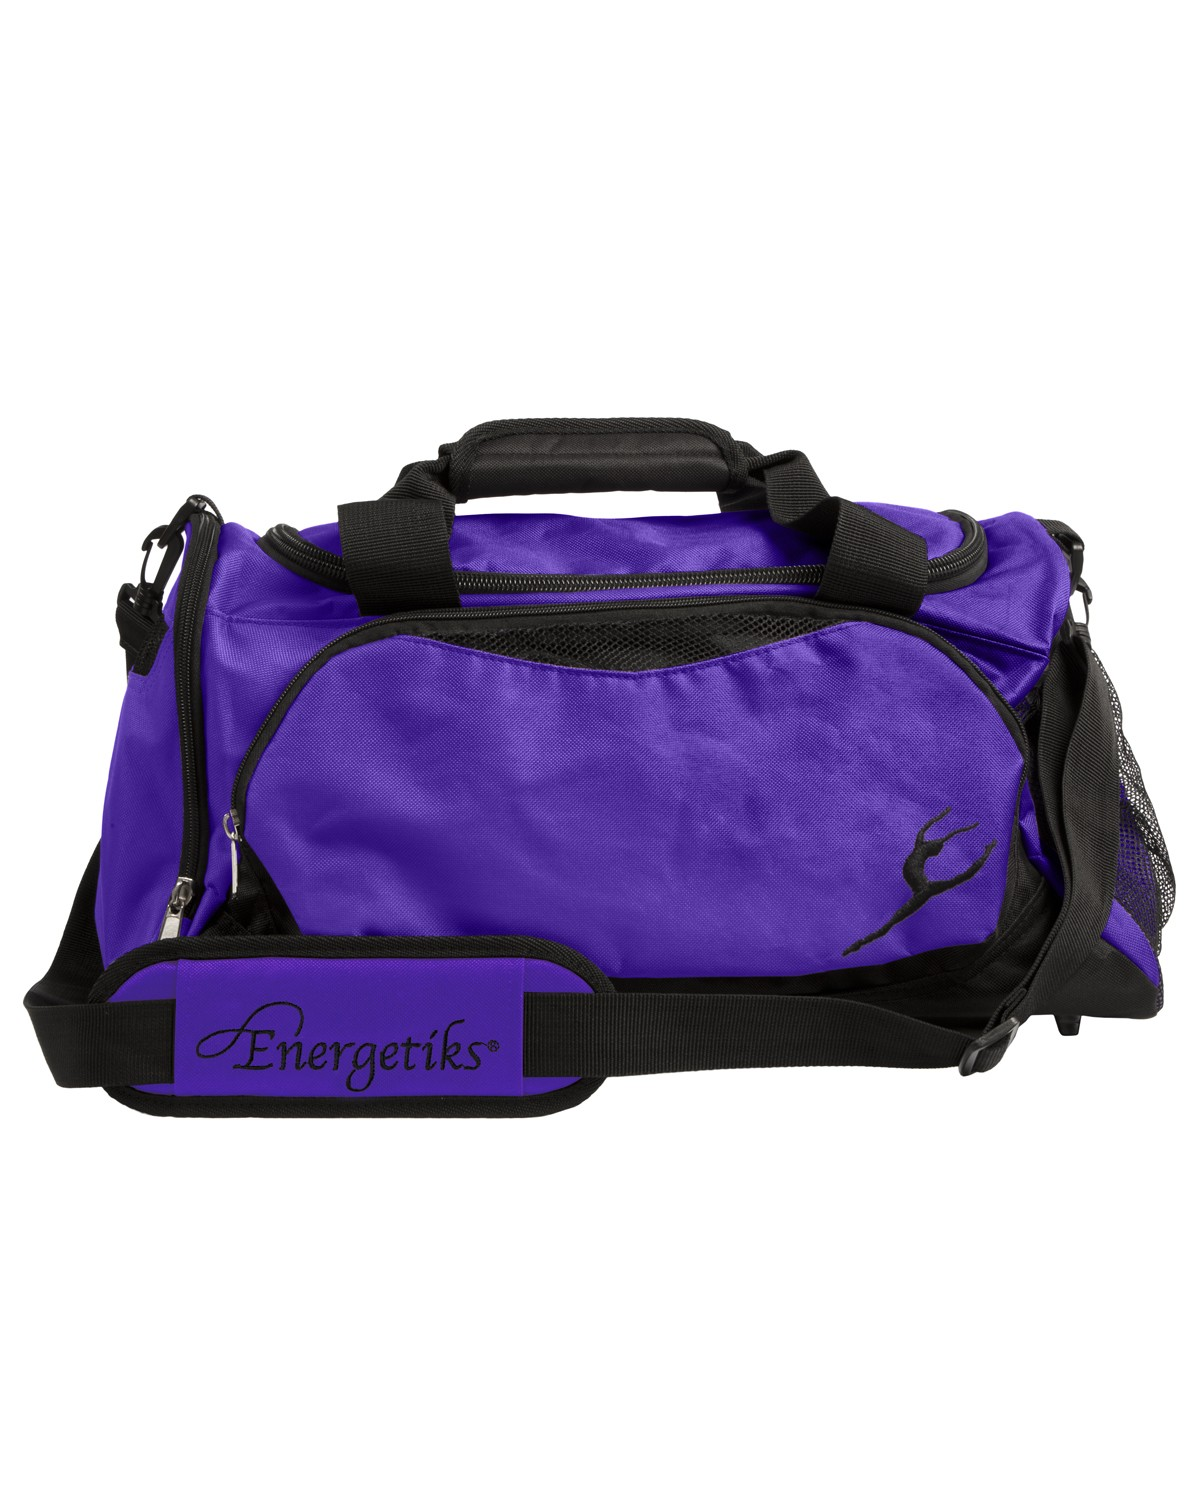 Energetiks Large Dance Bag